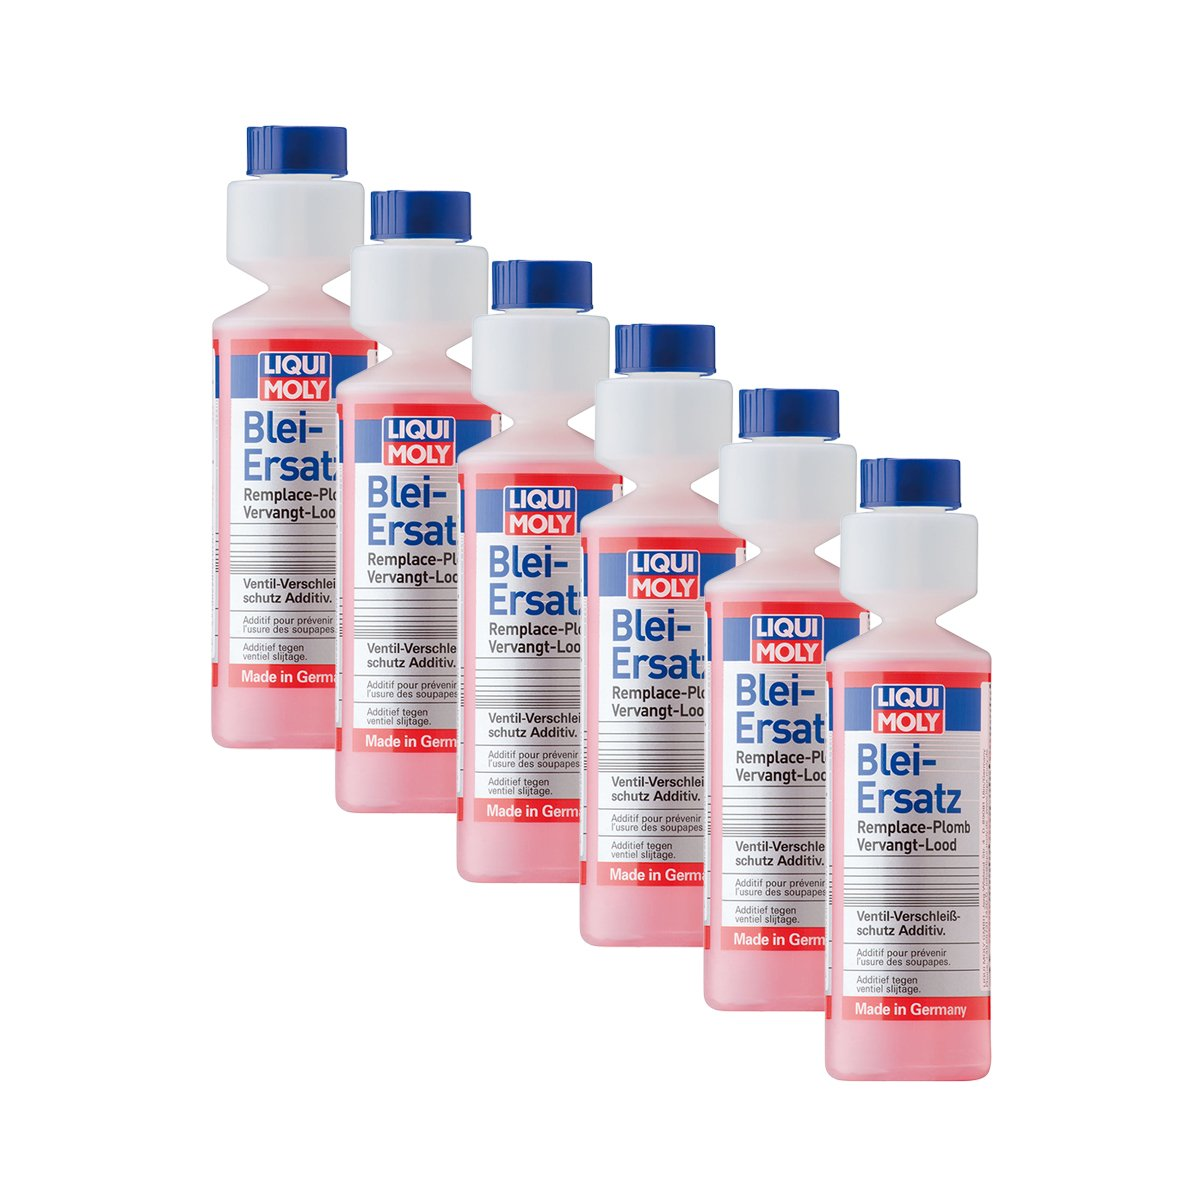 Liqui Moly Additif de carburant remplacement plomb, lot de 6 flacons de 250 ml, avec valve de protection